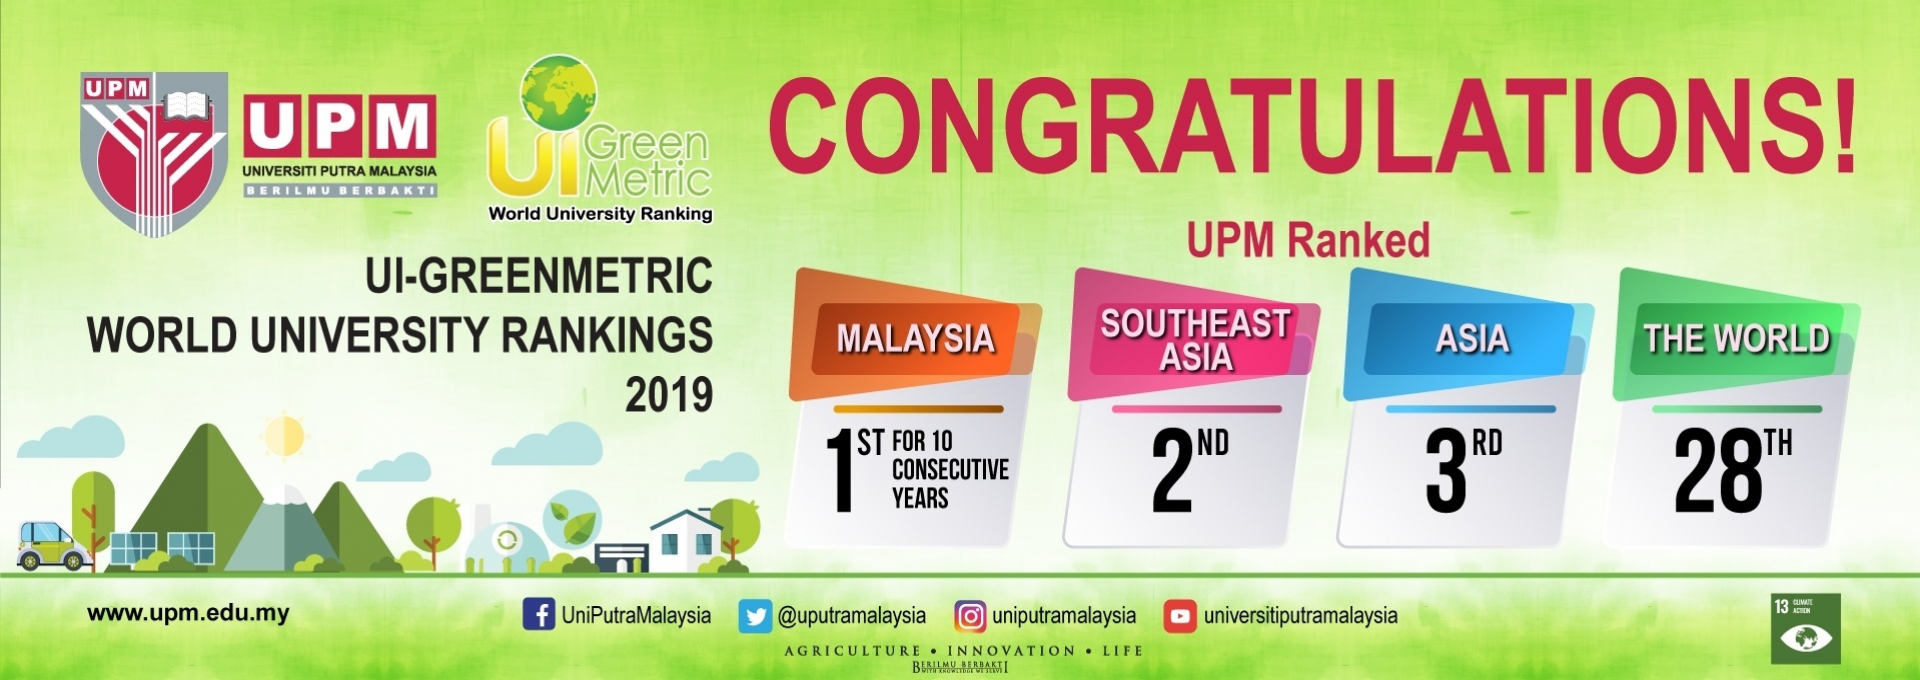 UI Green World University Ranking 2020